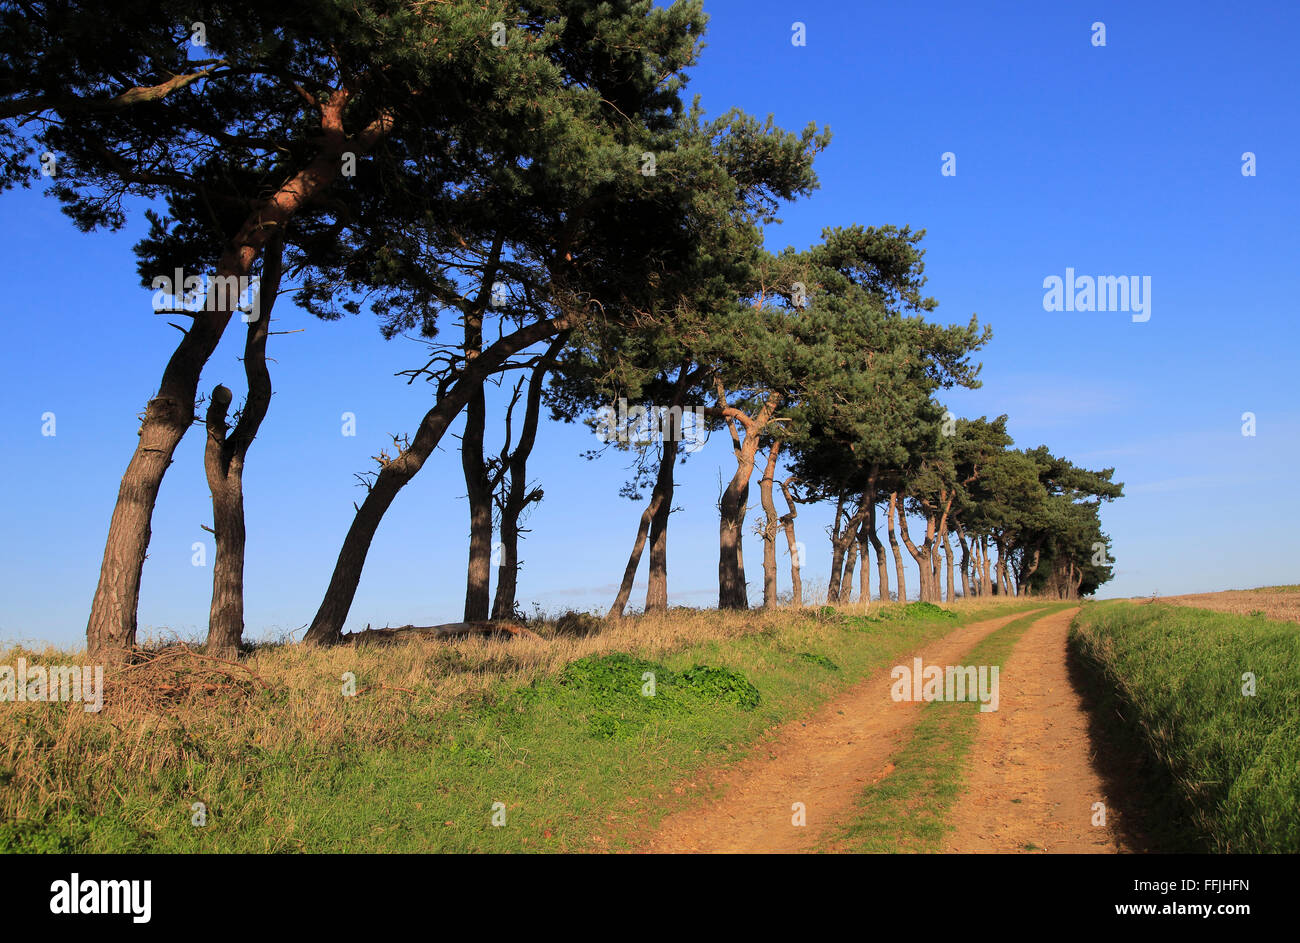 A line of Scots pine trees marking an field boundary in the countryside, Shottisham, Suffolk, England - Stock Image